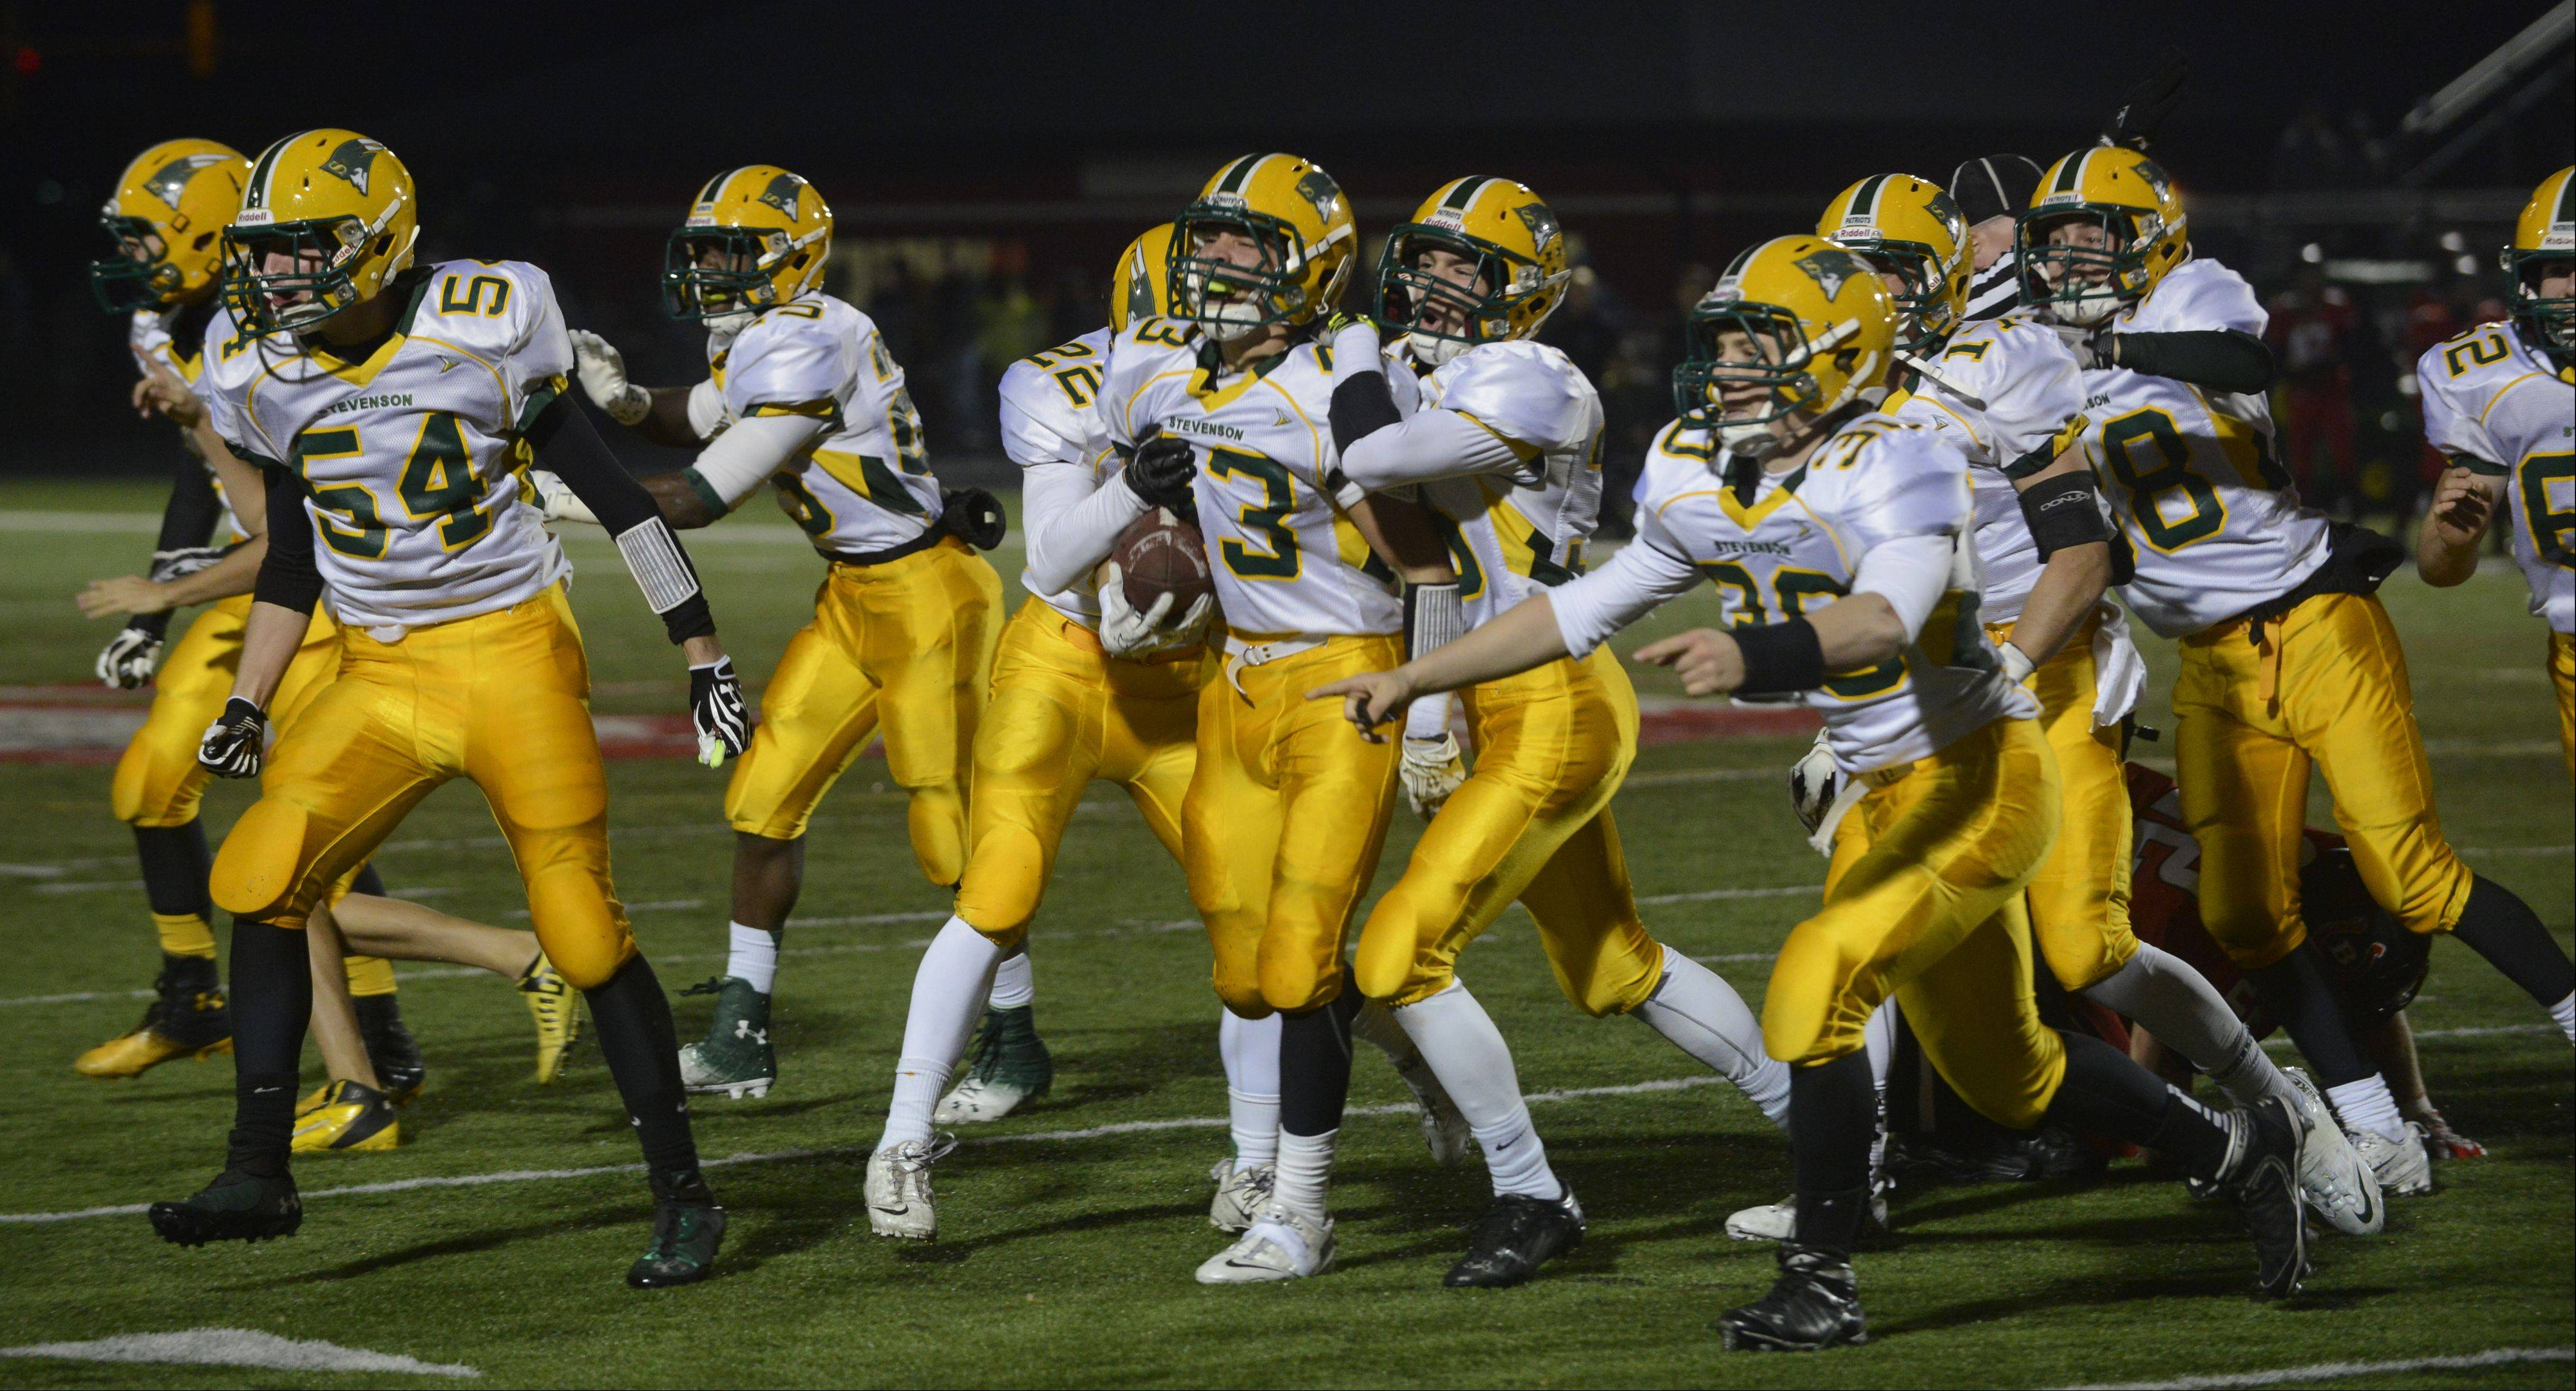 Playoffs - Quarterfinal - Photos from the Stevenson at Barrington Class 8A football playoff game on Saturday, Nov. 16.